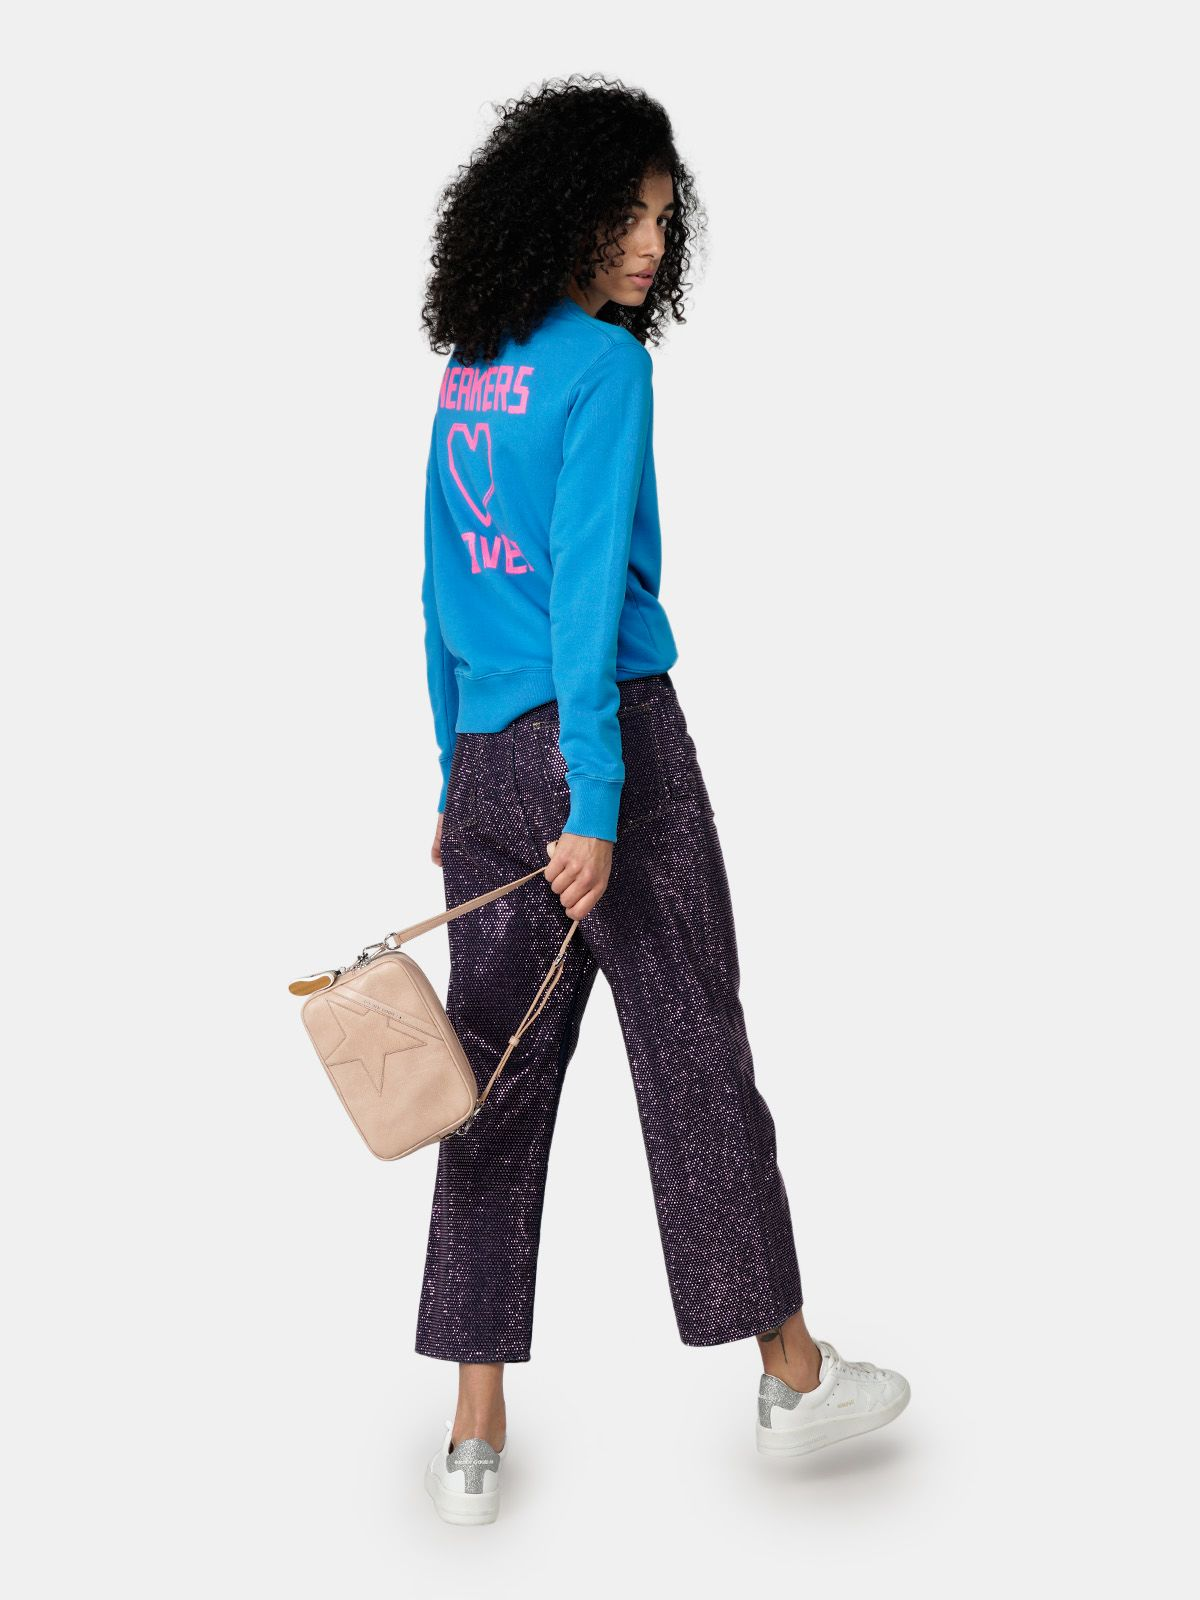 Golden Goose - Athena blue round-neck sweatshirt with print on the back in